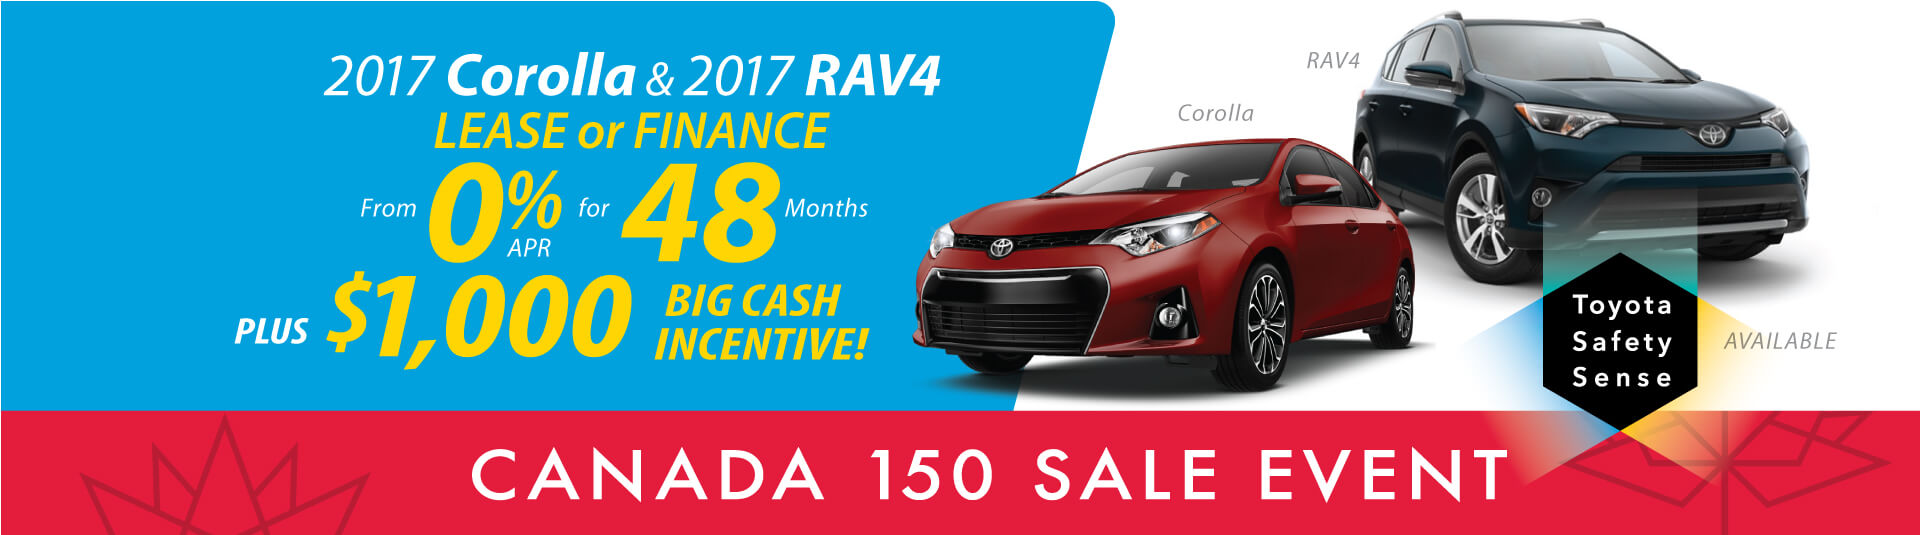 Corolla and RAV4 Offers